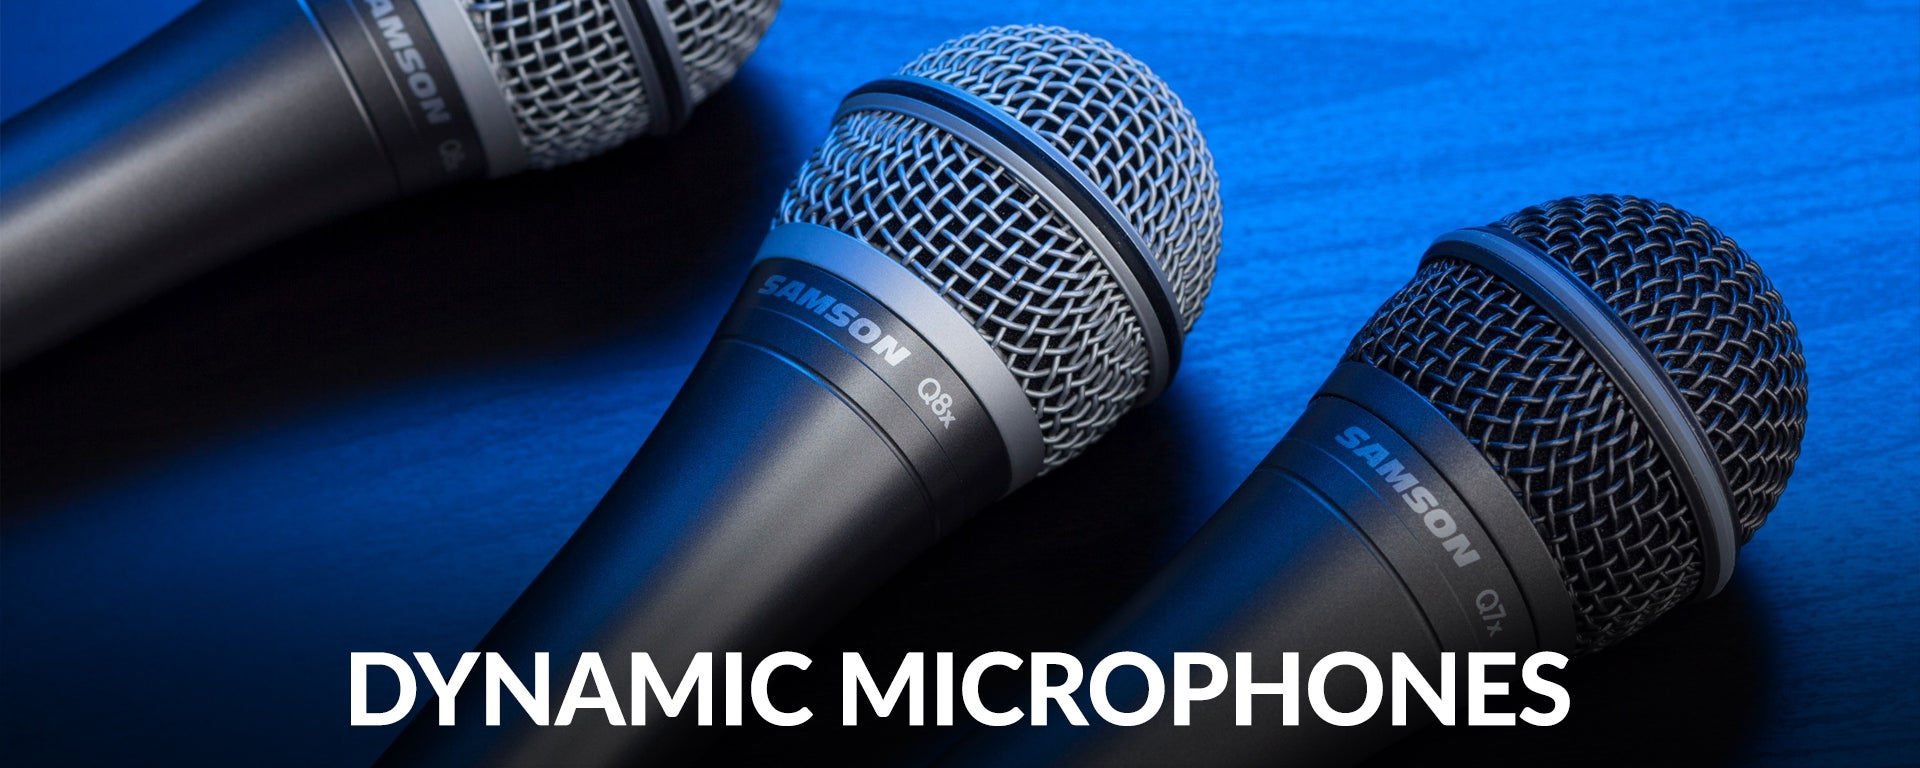 Shop the best selection of Dynamic Microphones at SamAsh.com and get the lowest price and fast, free shipping.